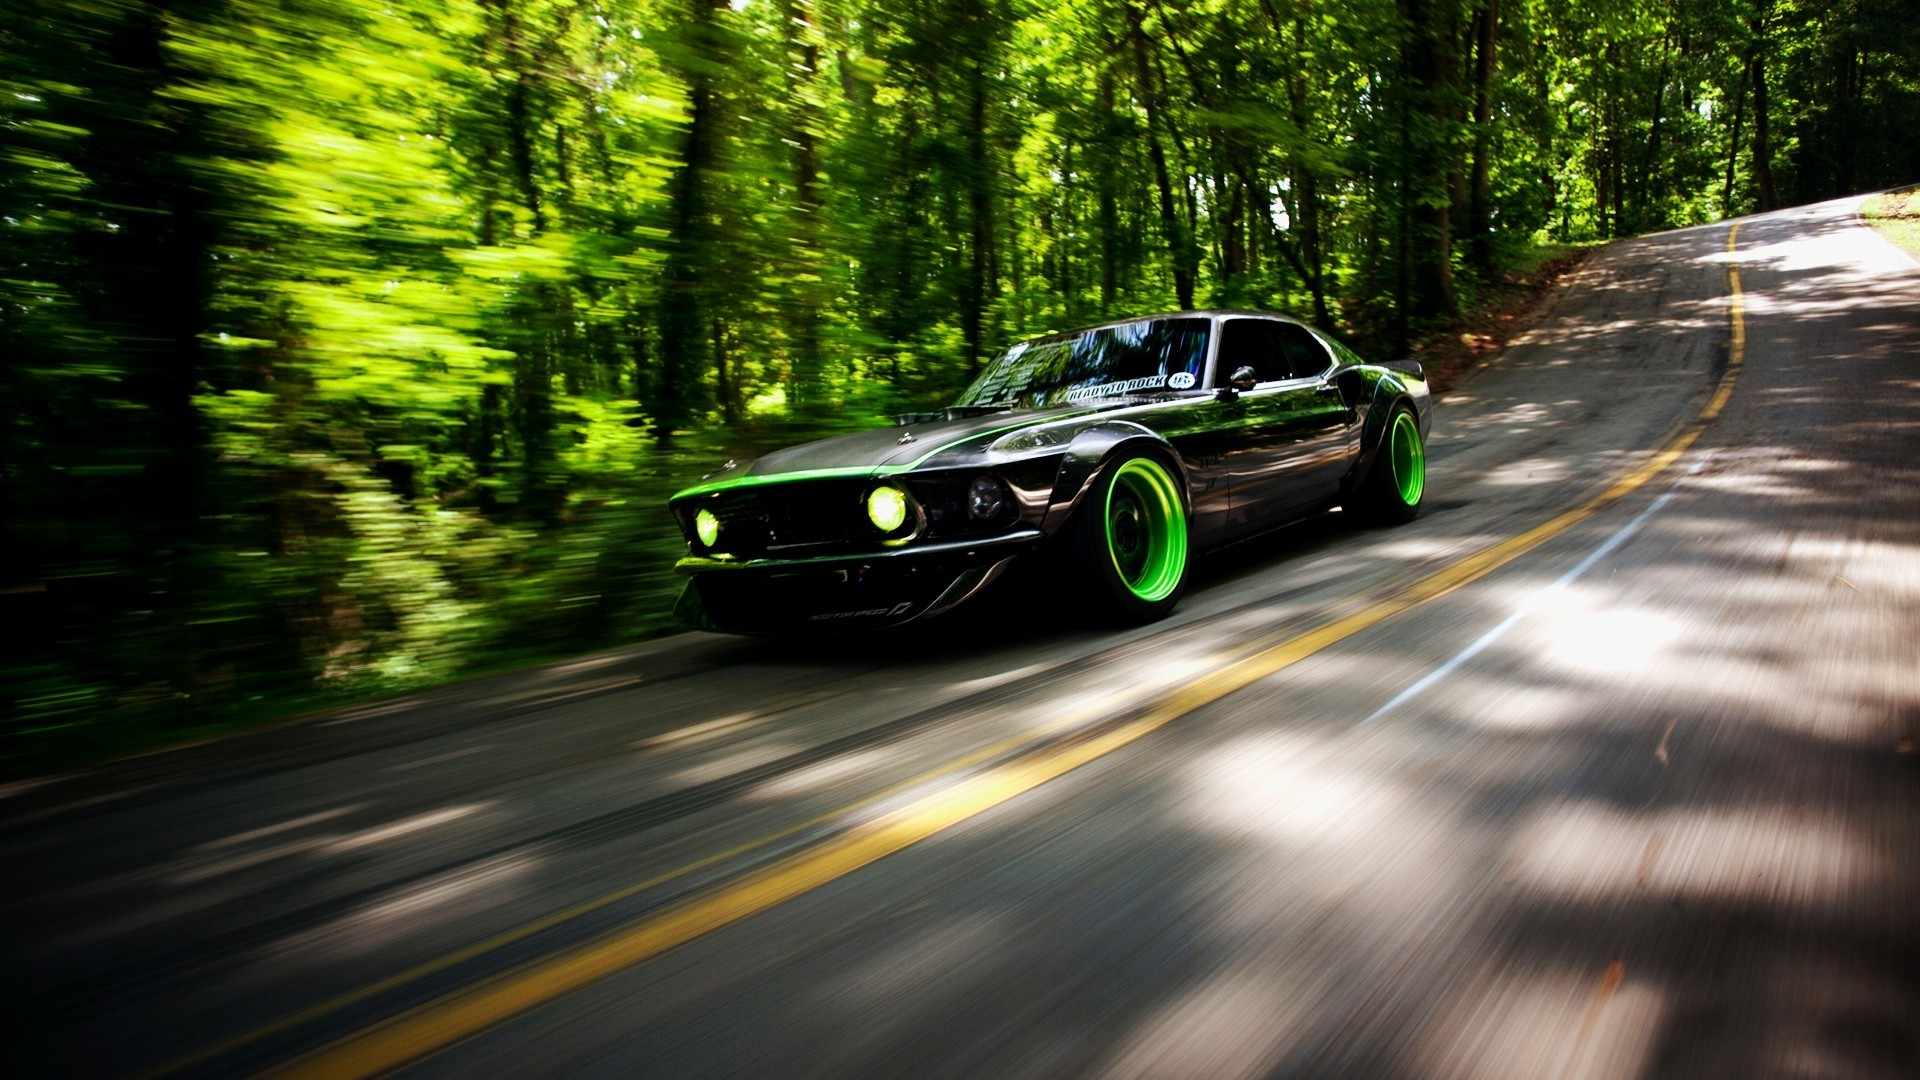 car, Ford Mustang, Ford Mustang RTR X, Road, Motion Blur, Shelby Cobra  Wallpapers HD / Desktop and Mobile Backgrounds